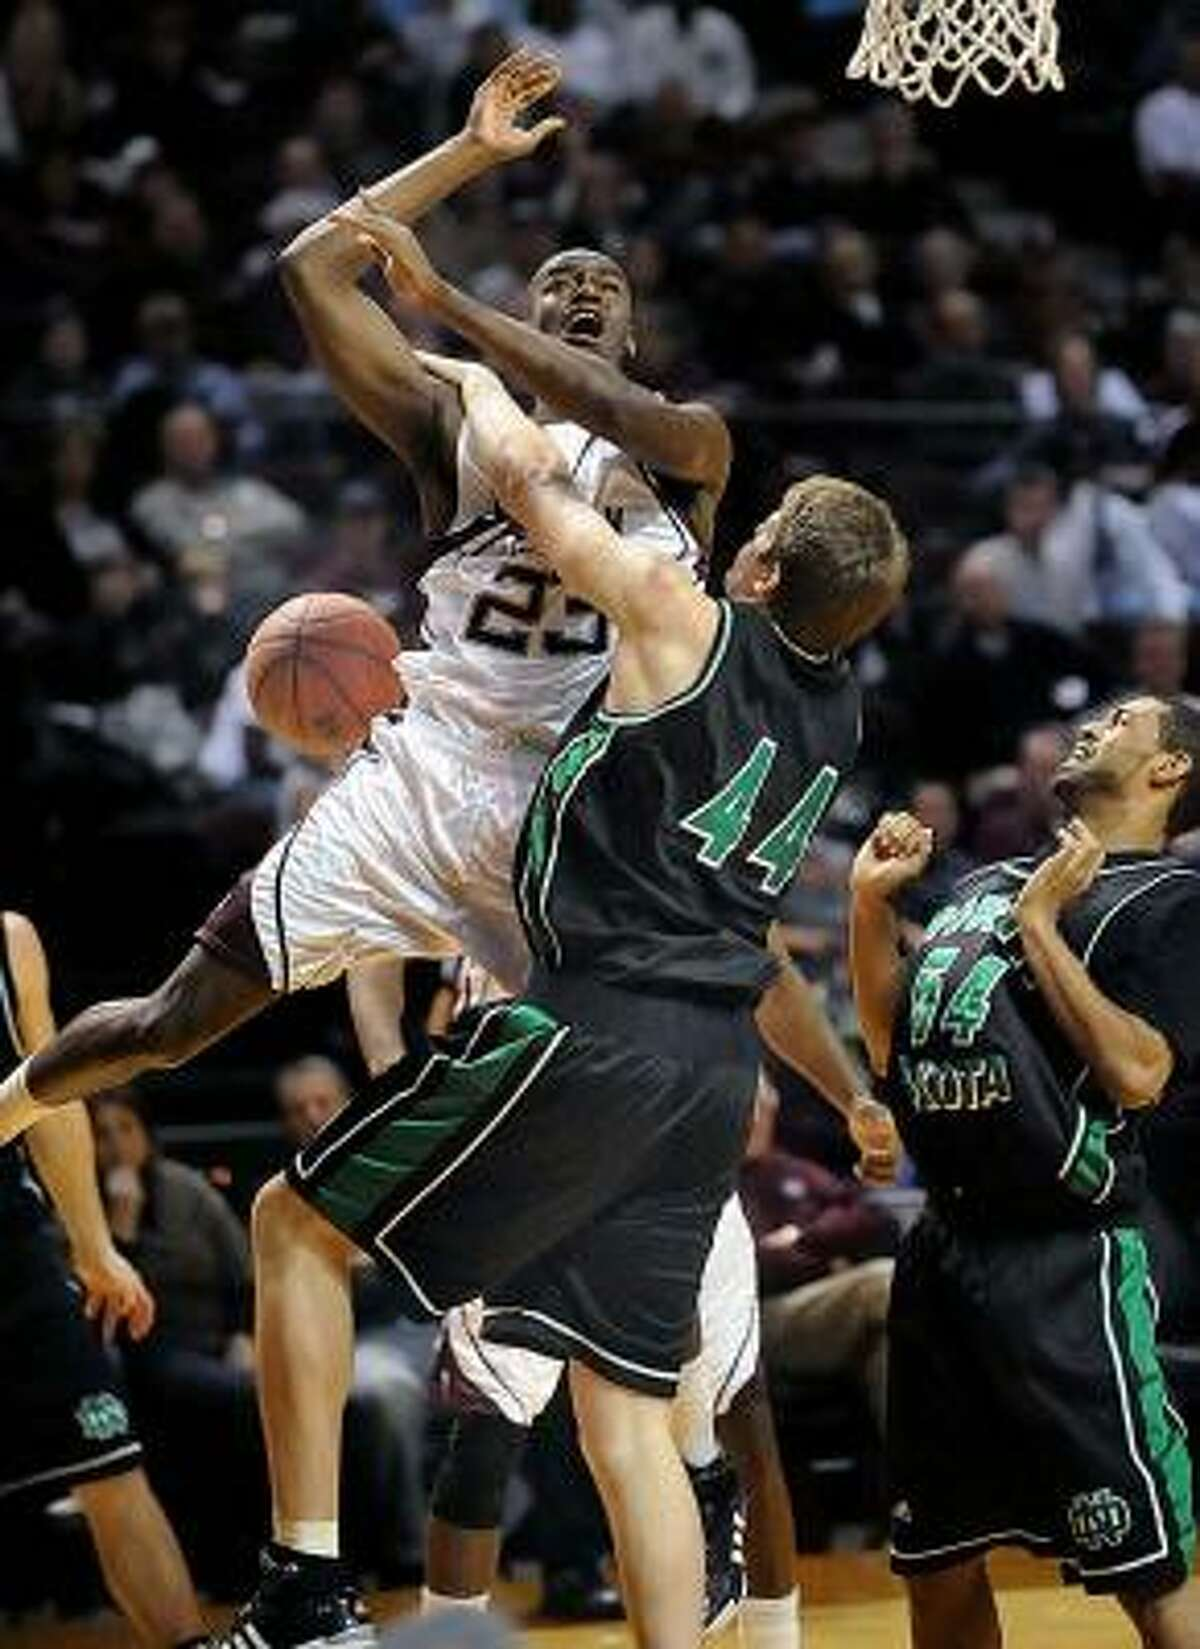 Texas A&M's Josh Carter (23) is fouled by North Dakota's Derek Benter (44) as Darius Joseph (54) looks on during the first half on Monday.